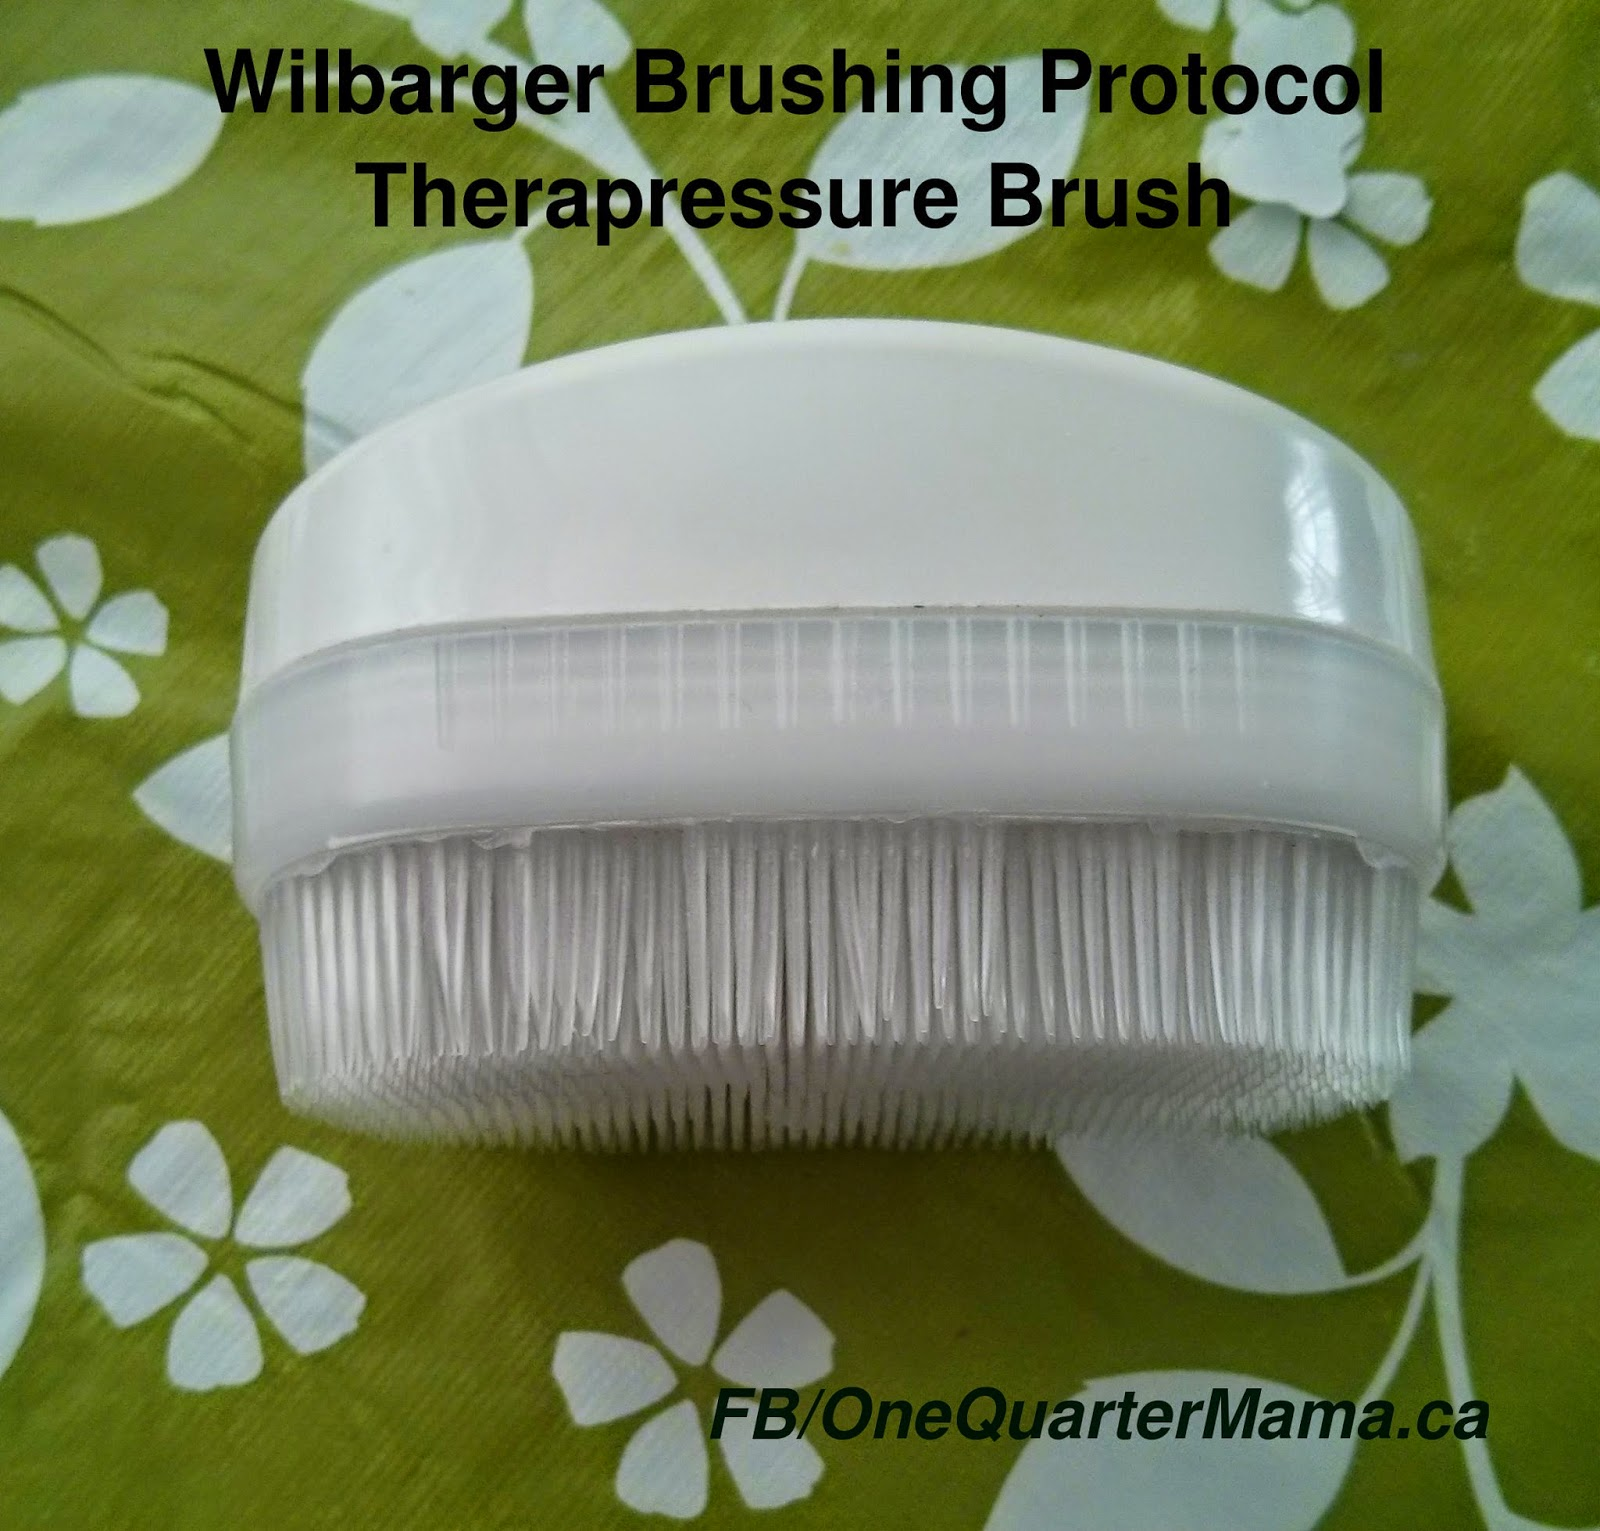 wilbarger brushing protocol therapressure brush on OneQuarterMama.ca